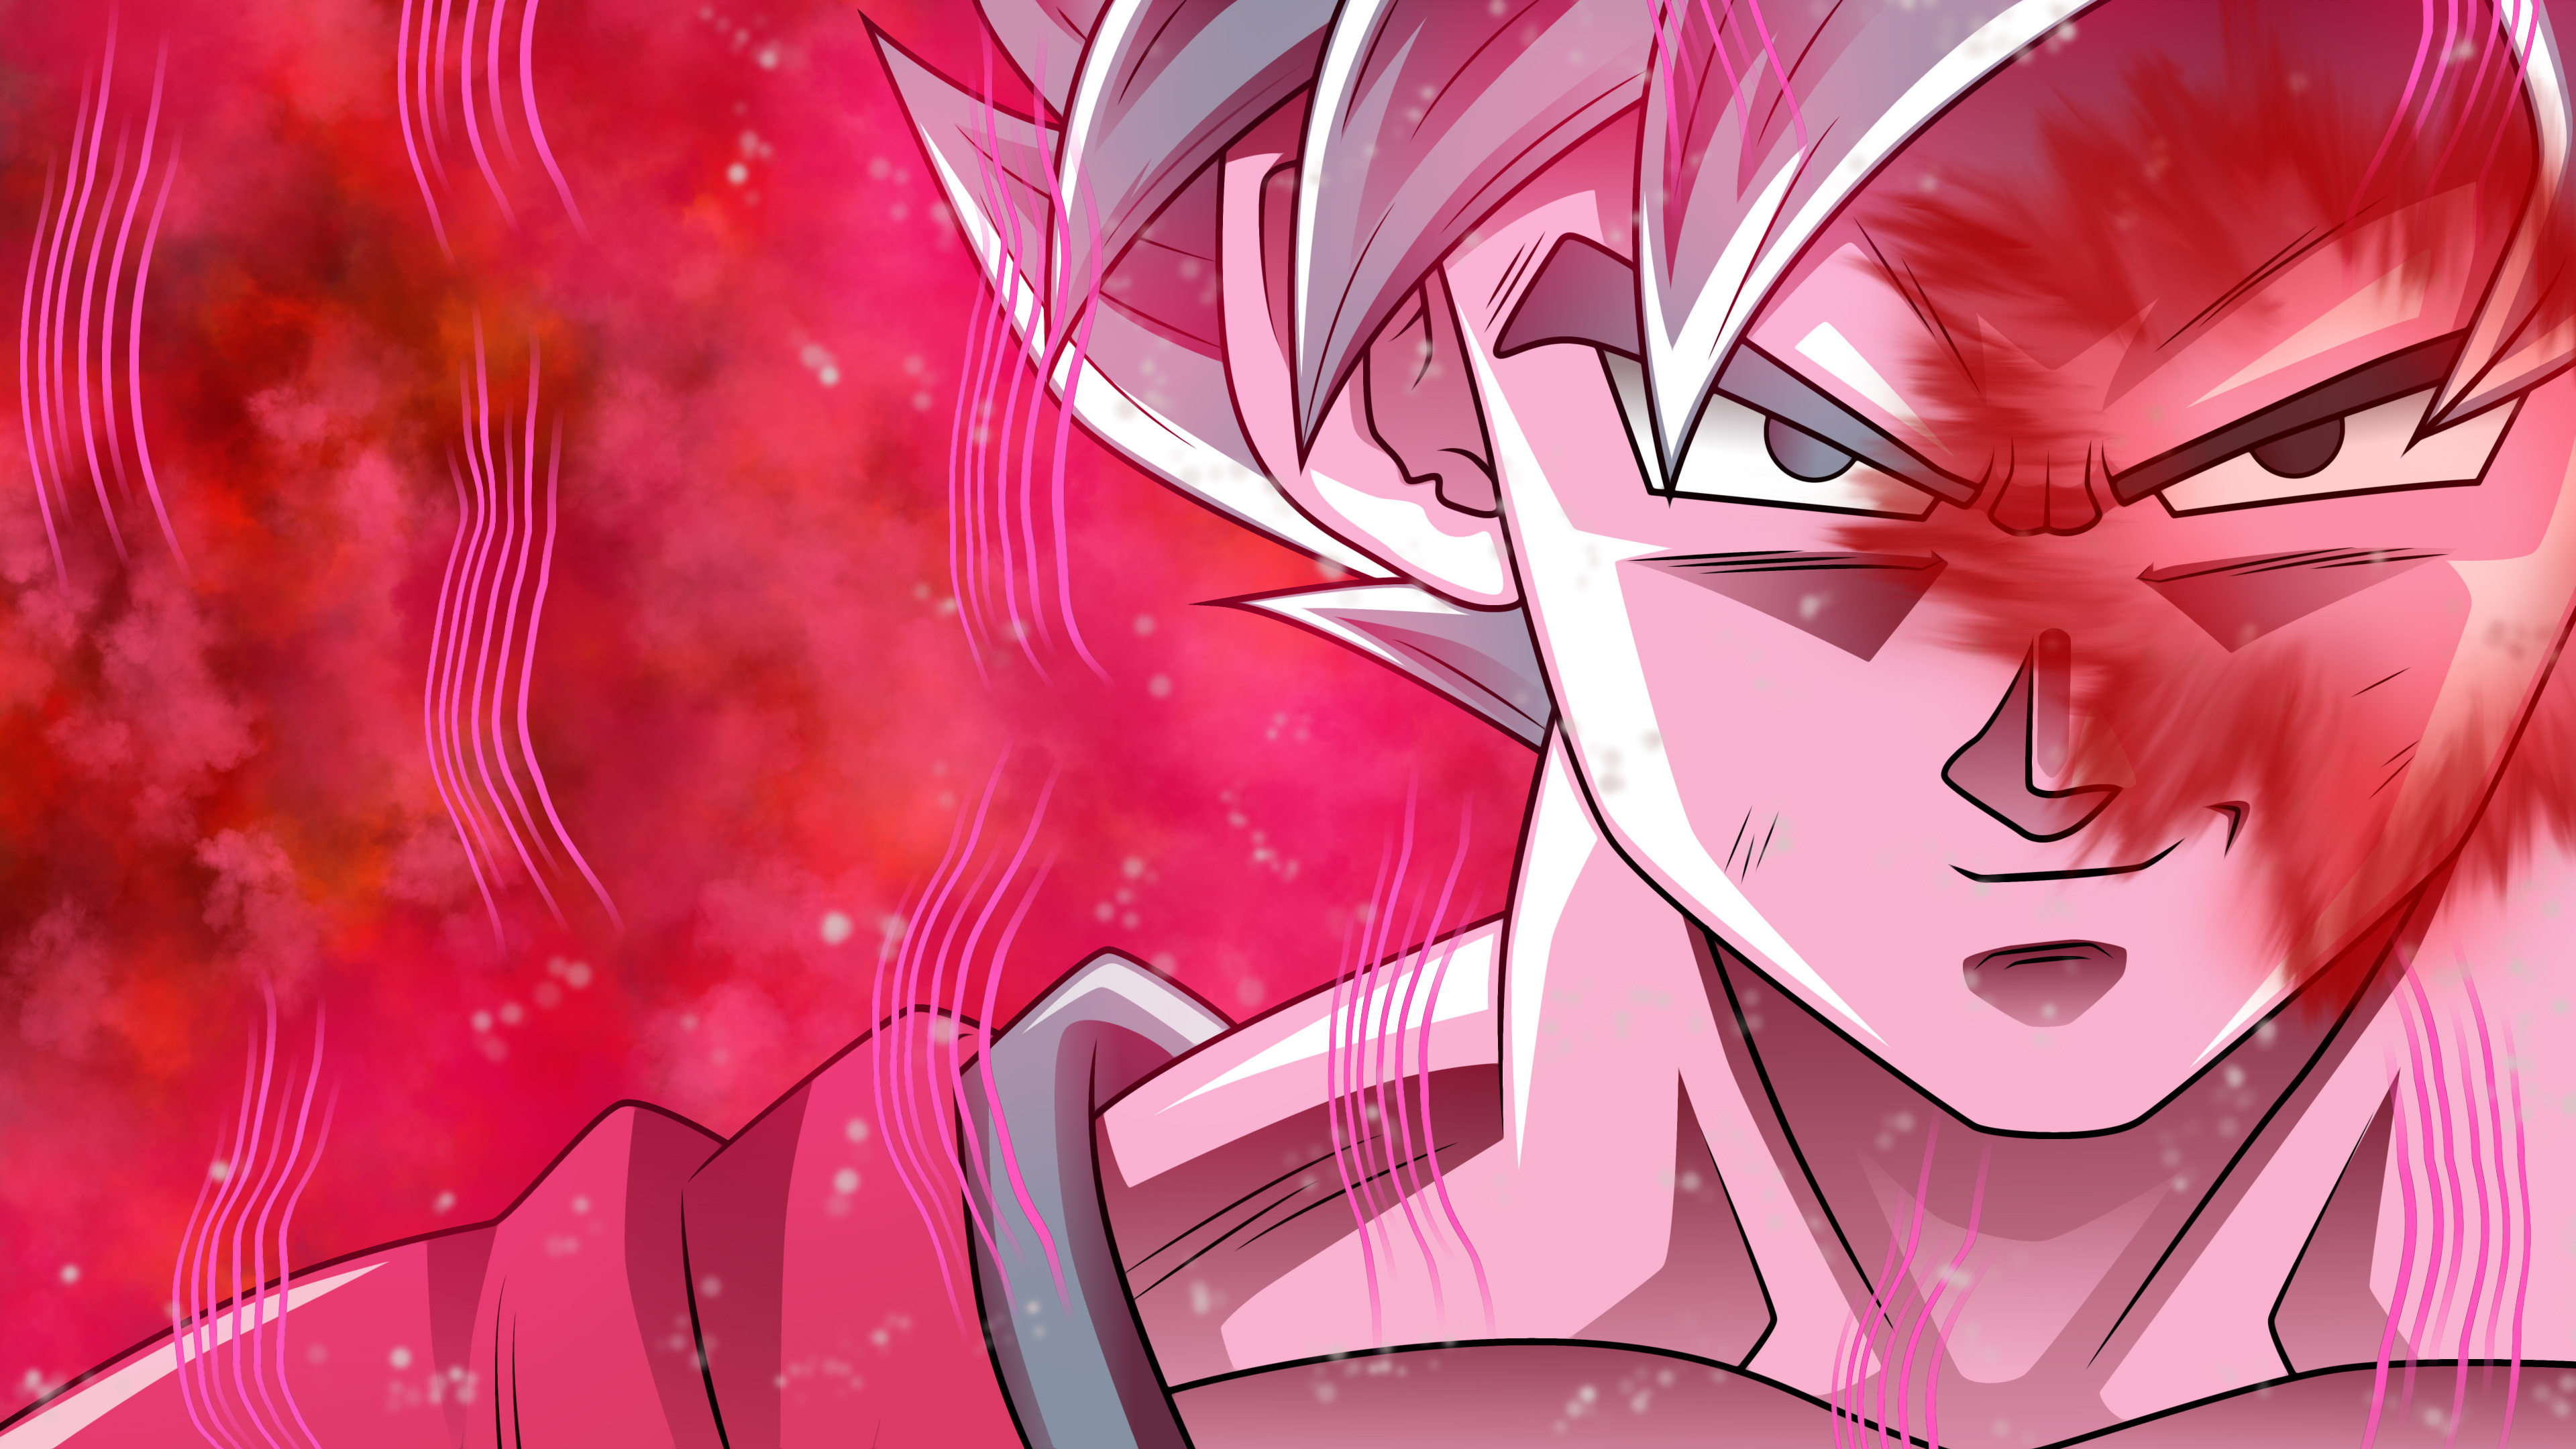 goku fan art 4k 1548527590 - Goku Fan Art 4k - hd-wallpapers, goku wallpapers, digital art wallpapers, deviantart wallpapers, artwork wallpapers, artist wallpapers, anime wallpapers, 4k-wallpapers